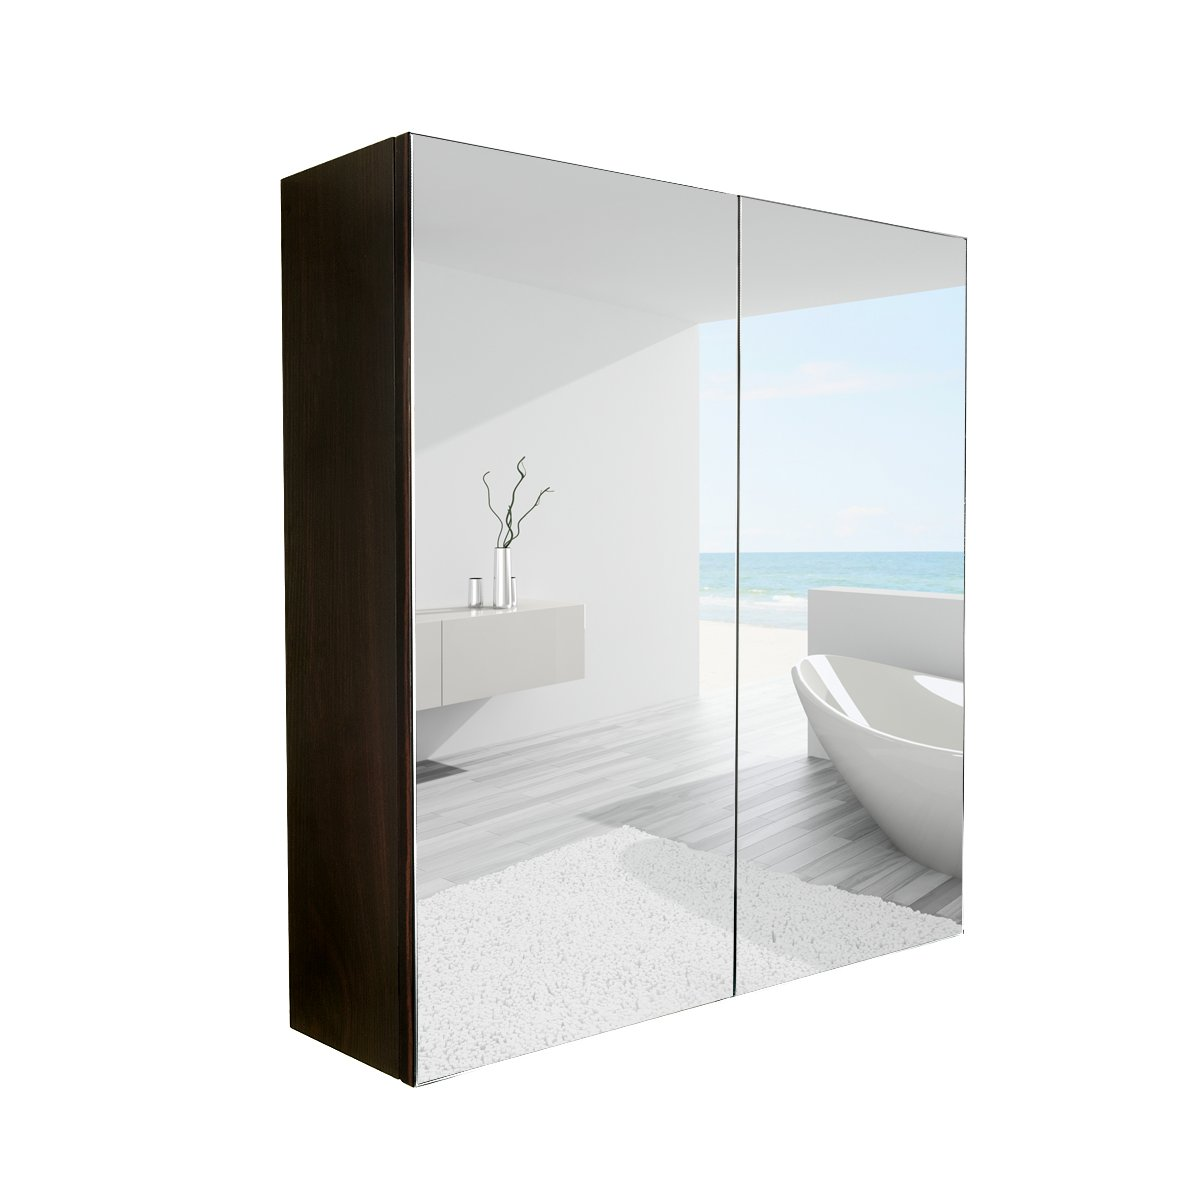 Elecwish 24 Quot Wide Wall Mount Mirrored Bathroom Medicine